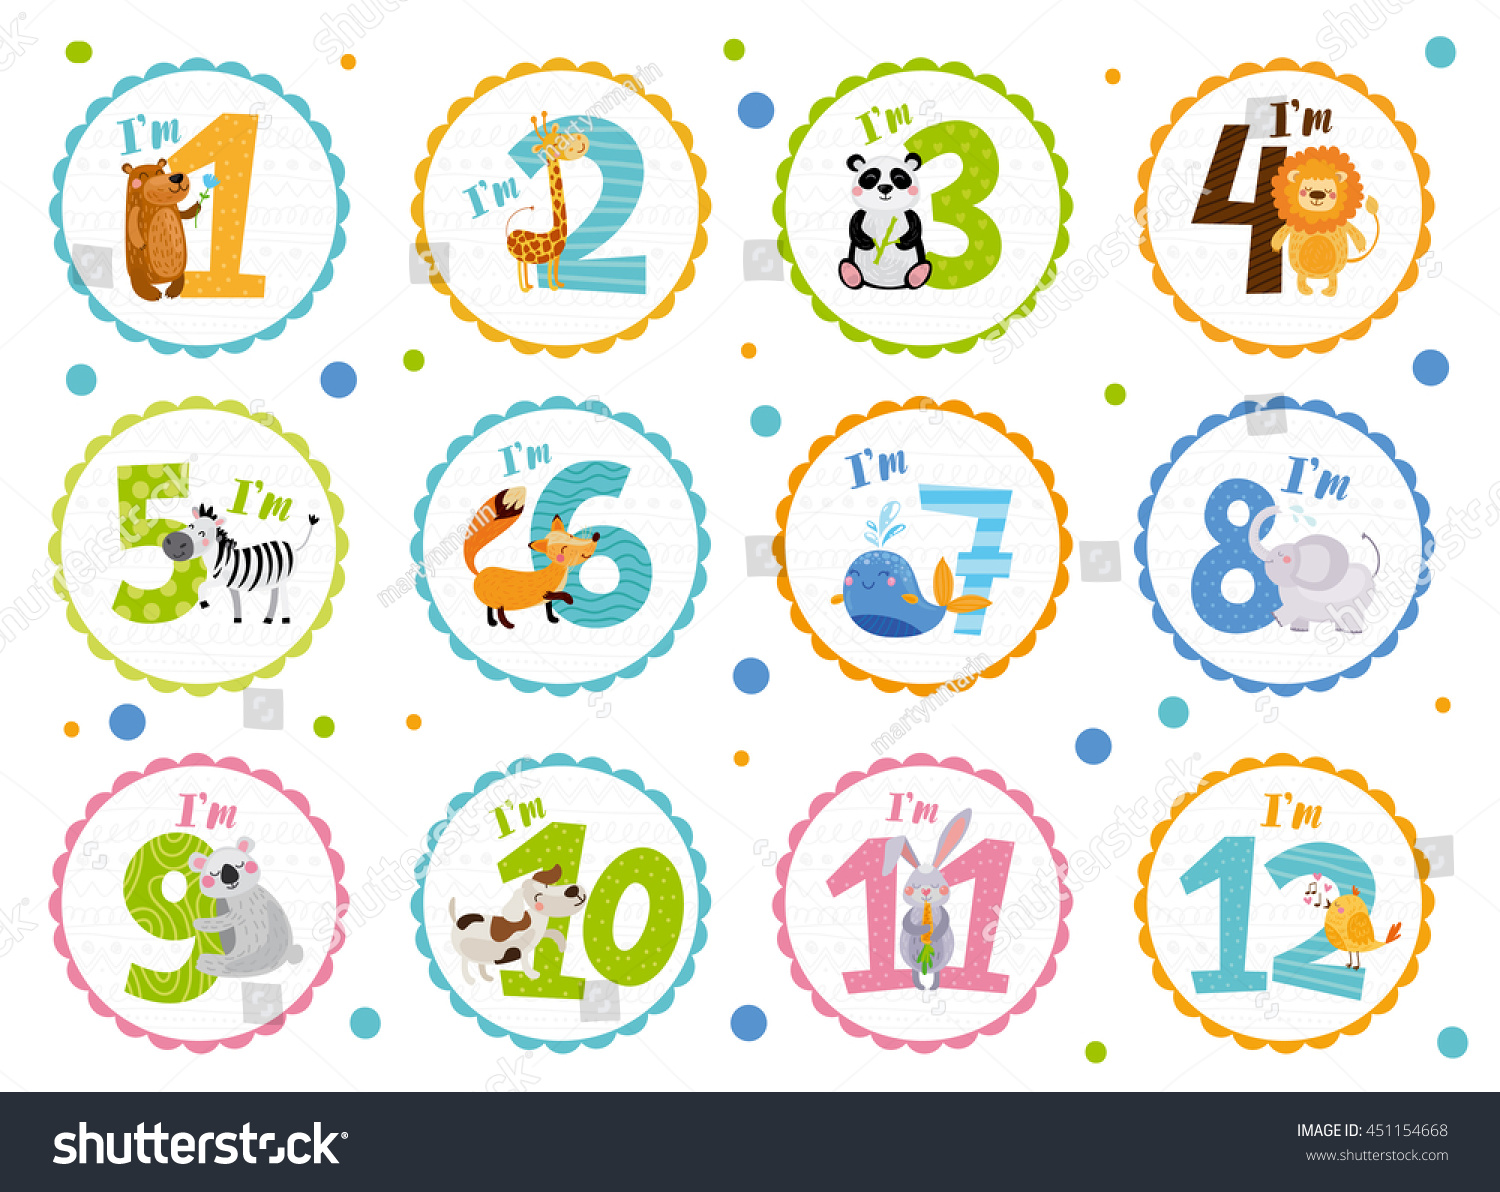 birthday sticker design ; stock-vector-cute-birthday-stickers-with-animals-for-babies-451154668